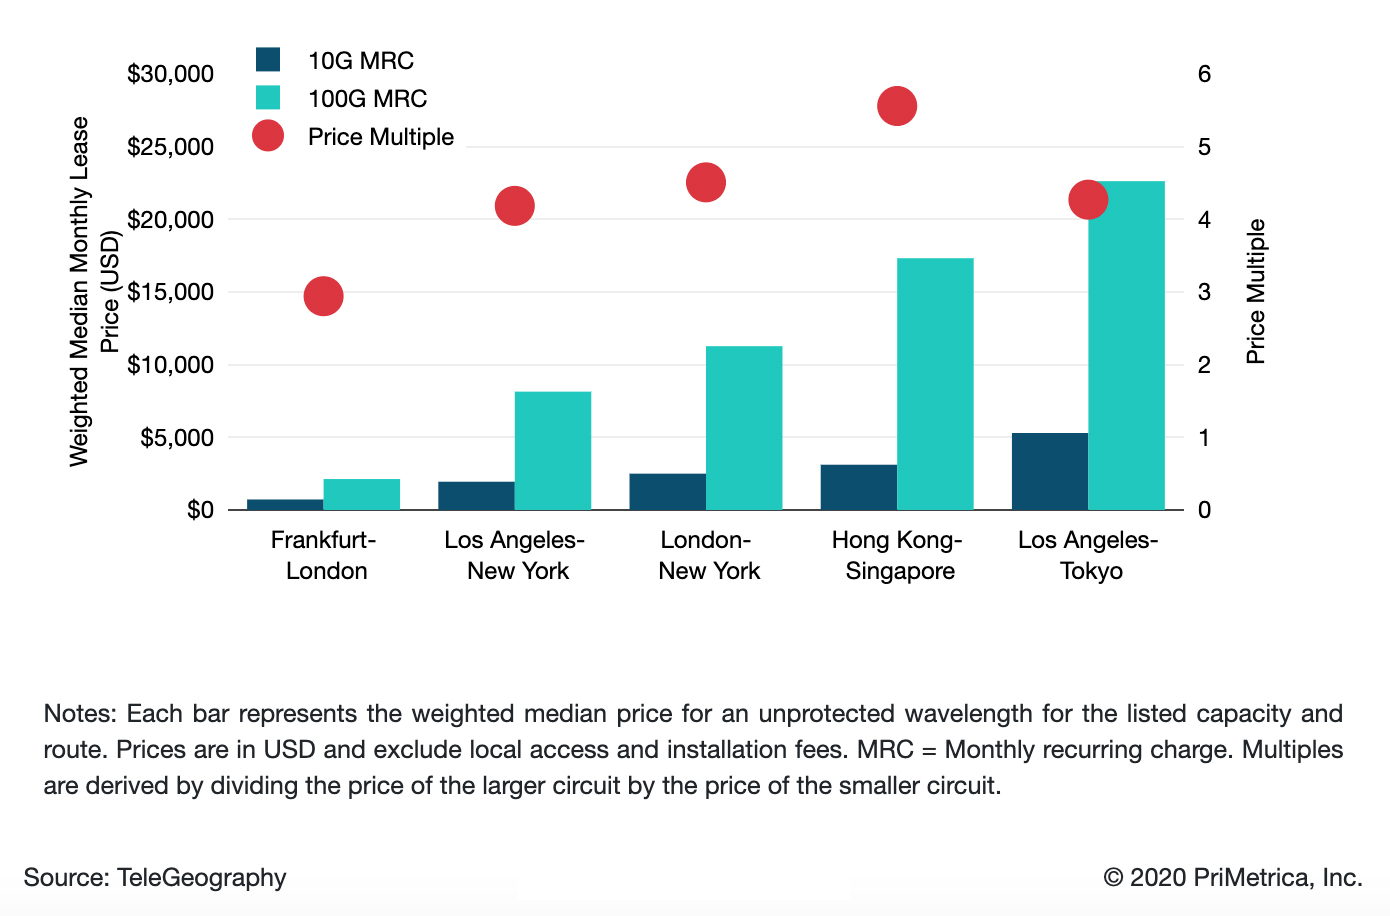 10 Gbps and 100 Gbps Wavelength Weighted Median Prices and Multiples on Select International Routes